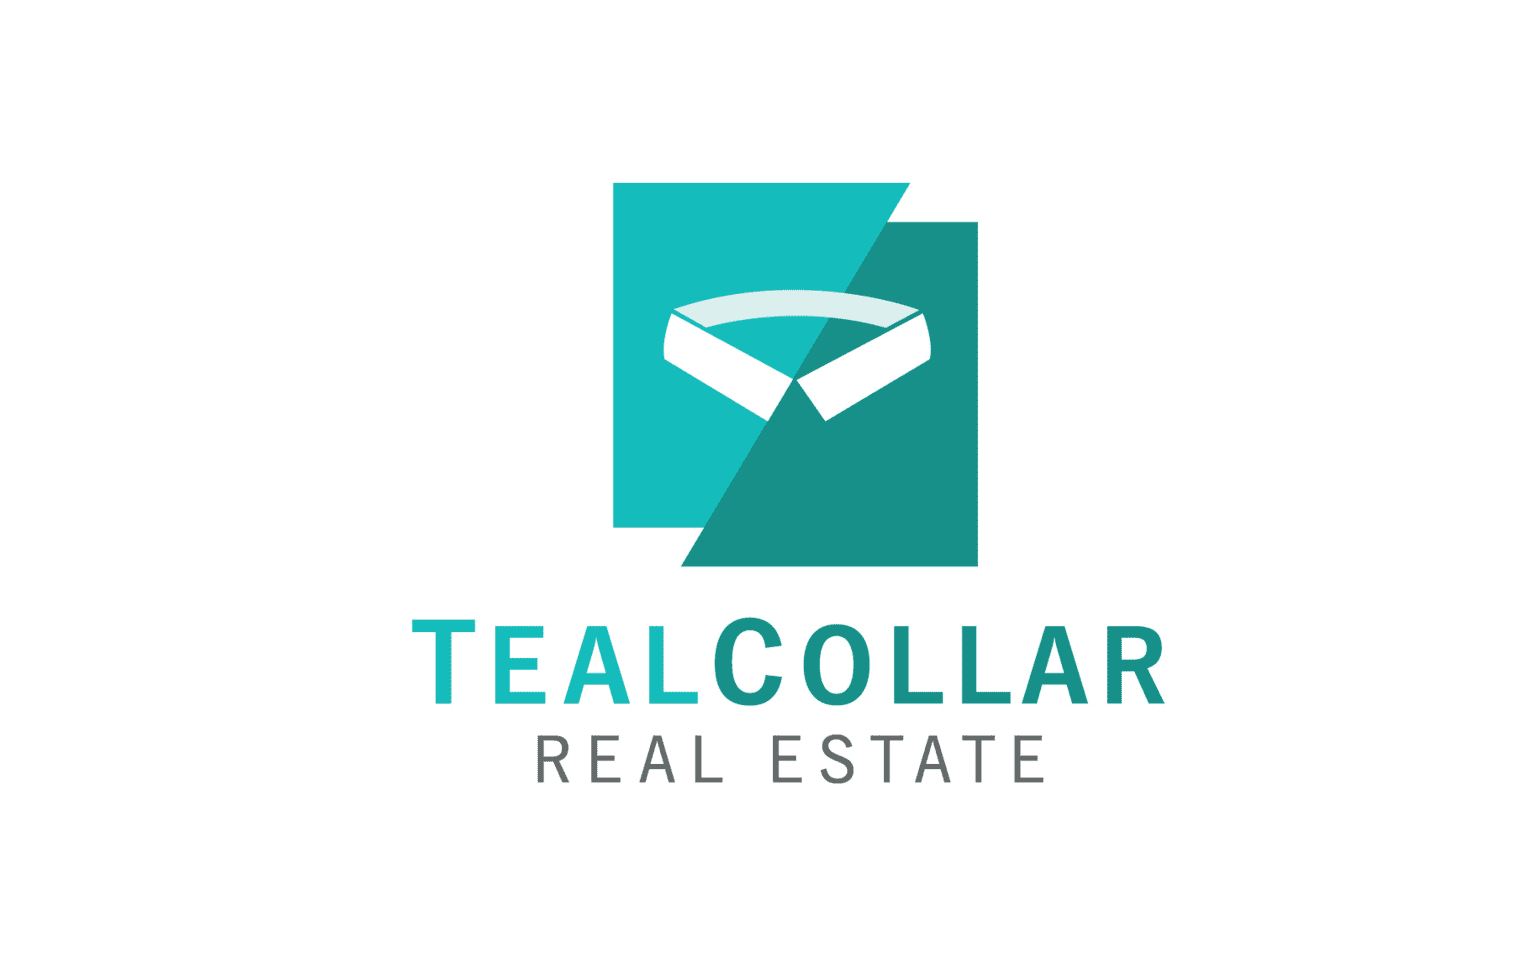 Real Estate Branding Development